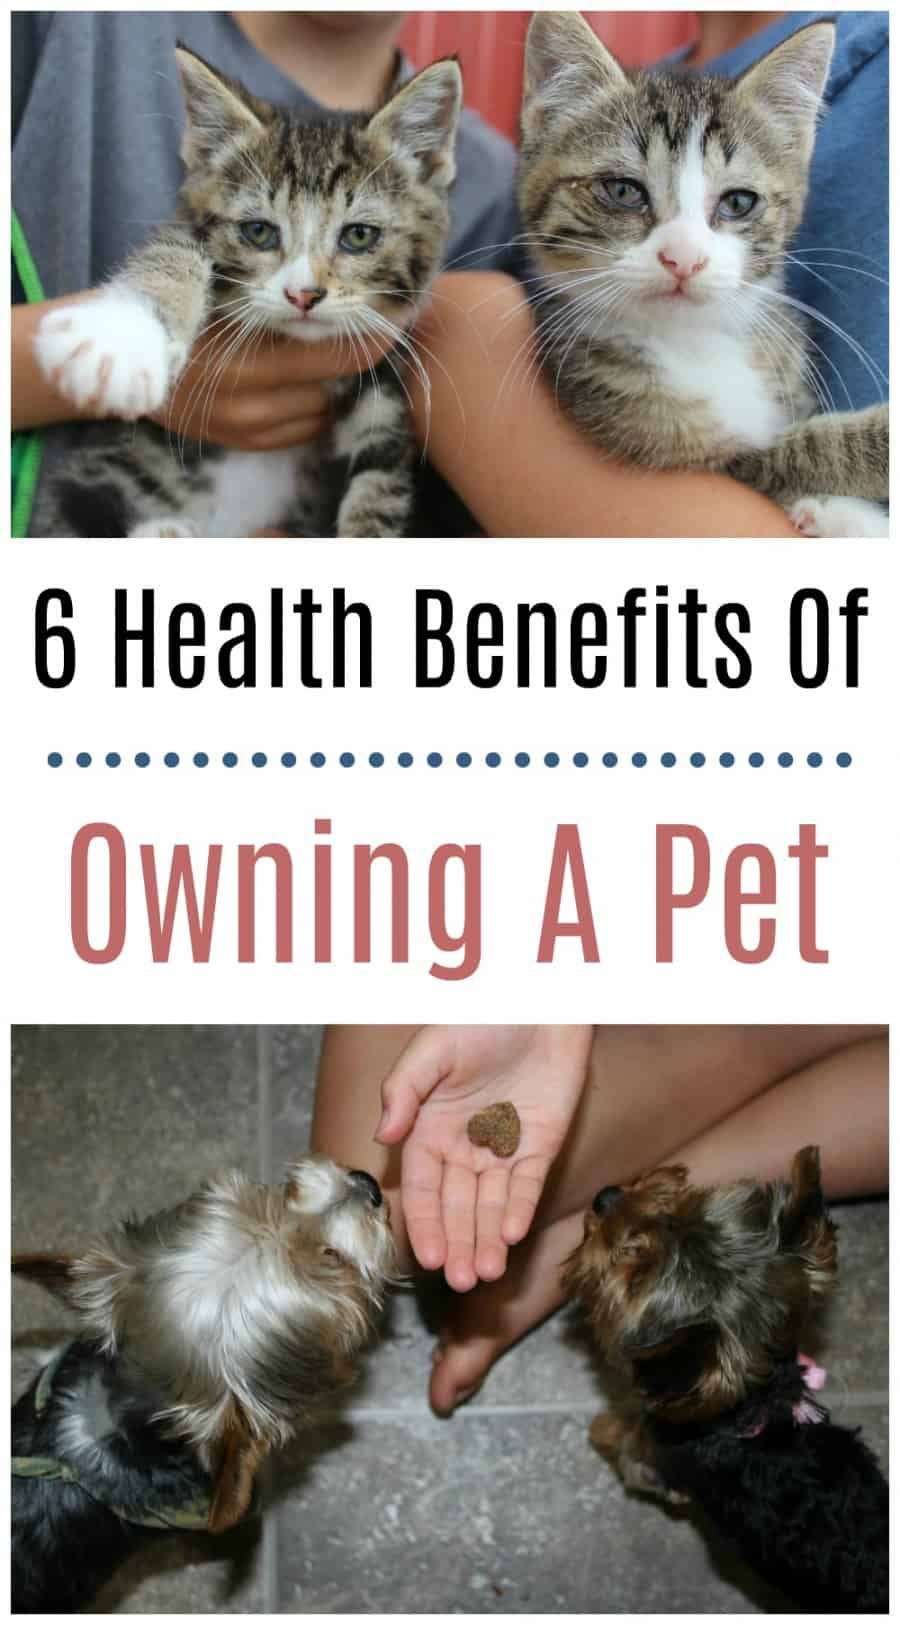 6 Health Benefits To Owning A Pet